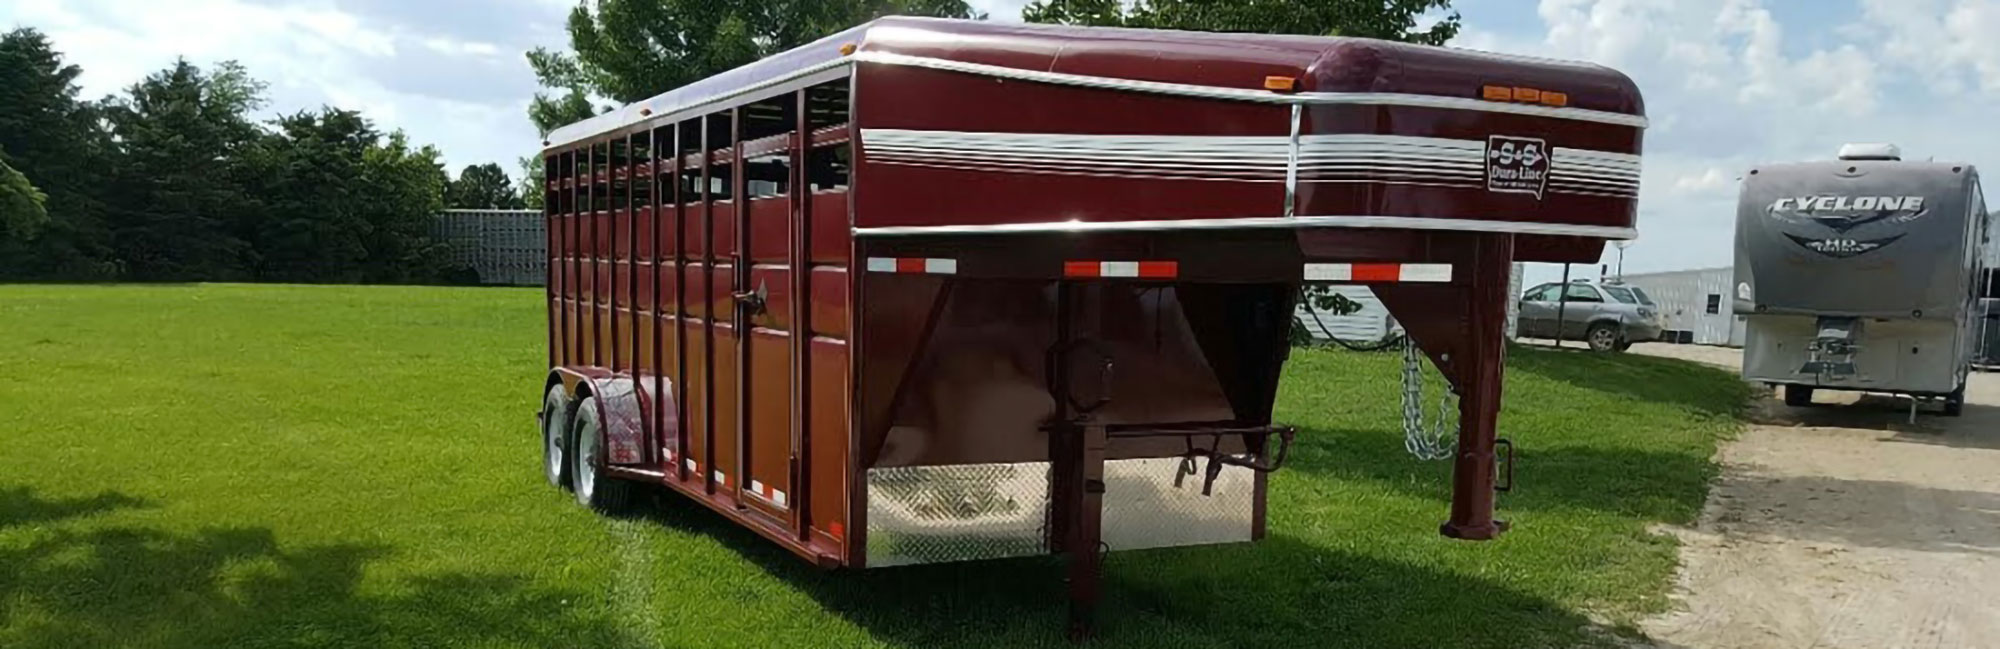 Home I 80 Trailers In De Soto Ia Find Trailers For Sale In Des Moines Ia At I 80 Including Flatbed Utility Dump And Horse Trailers